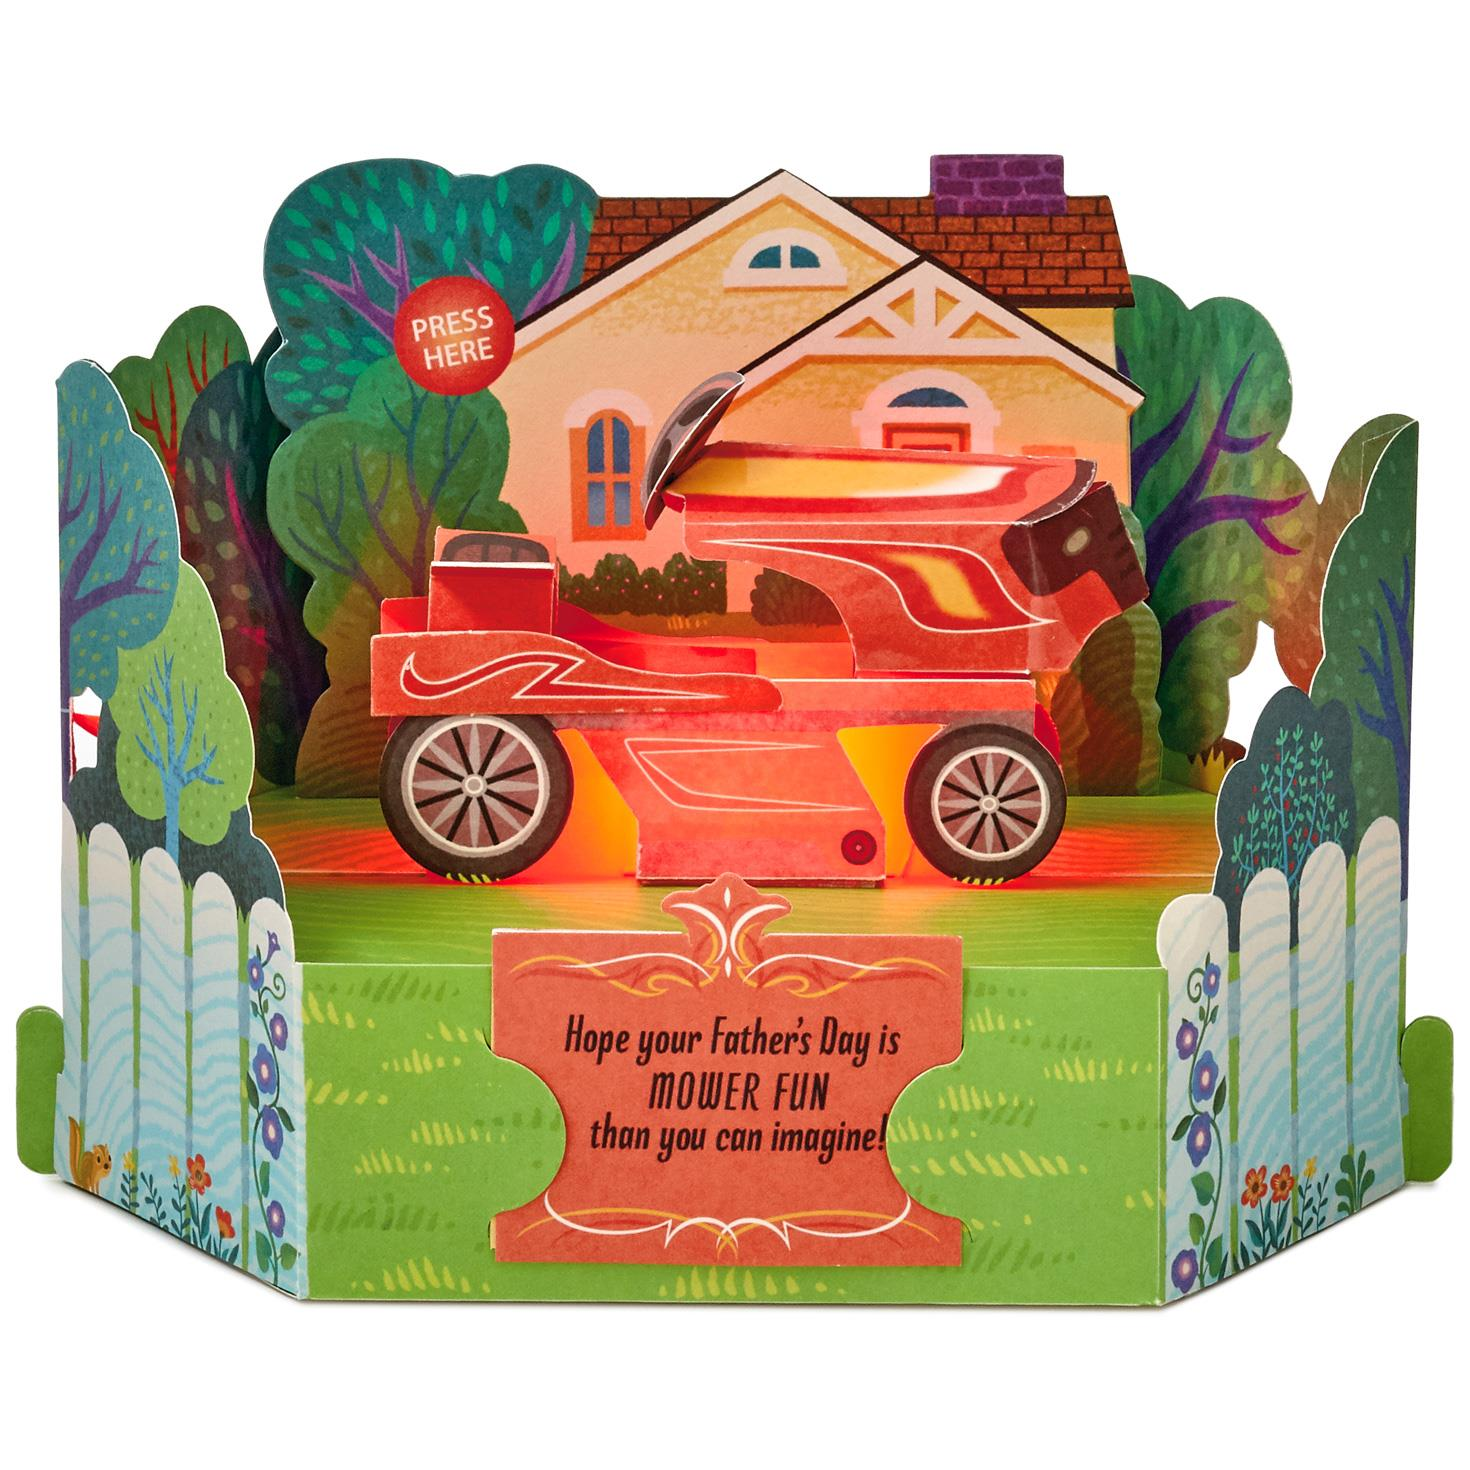 Lawn Mower Fun Pop Up Musical Father S Day Card With Light